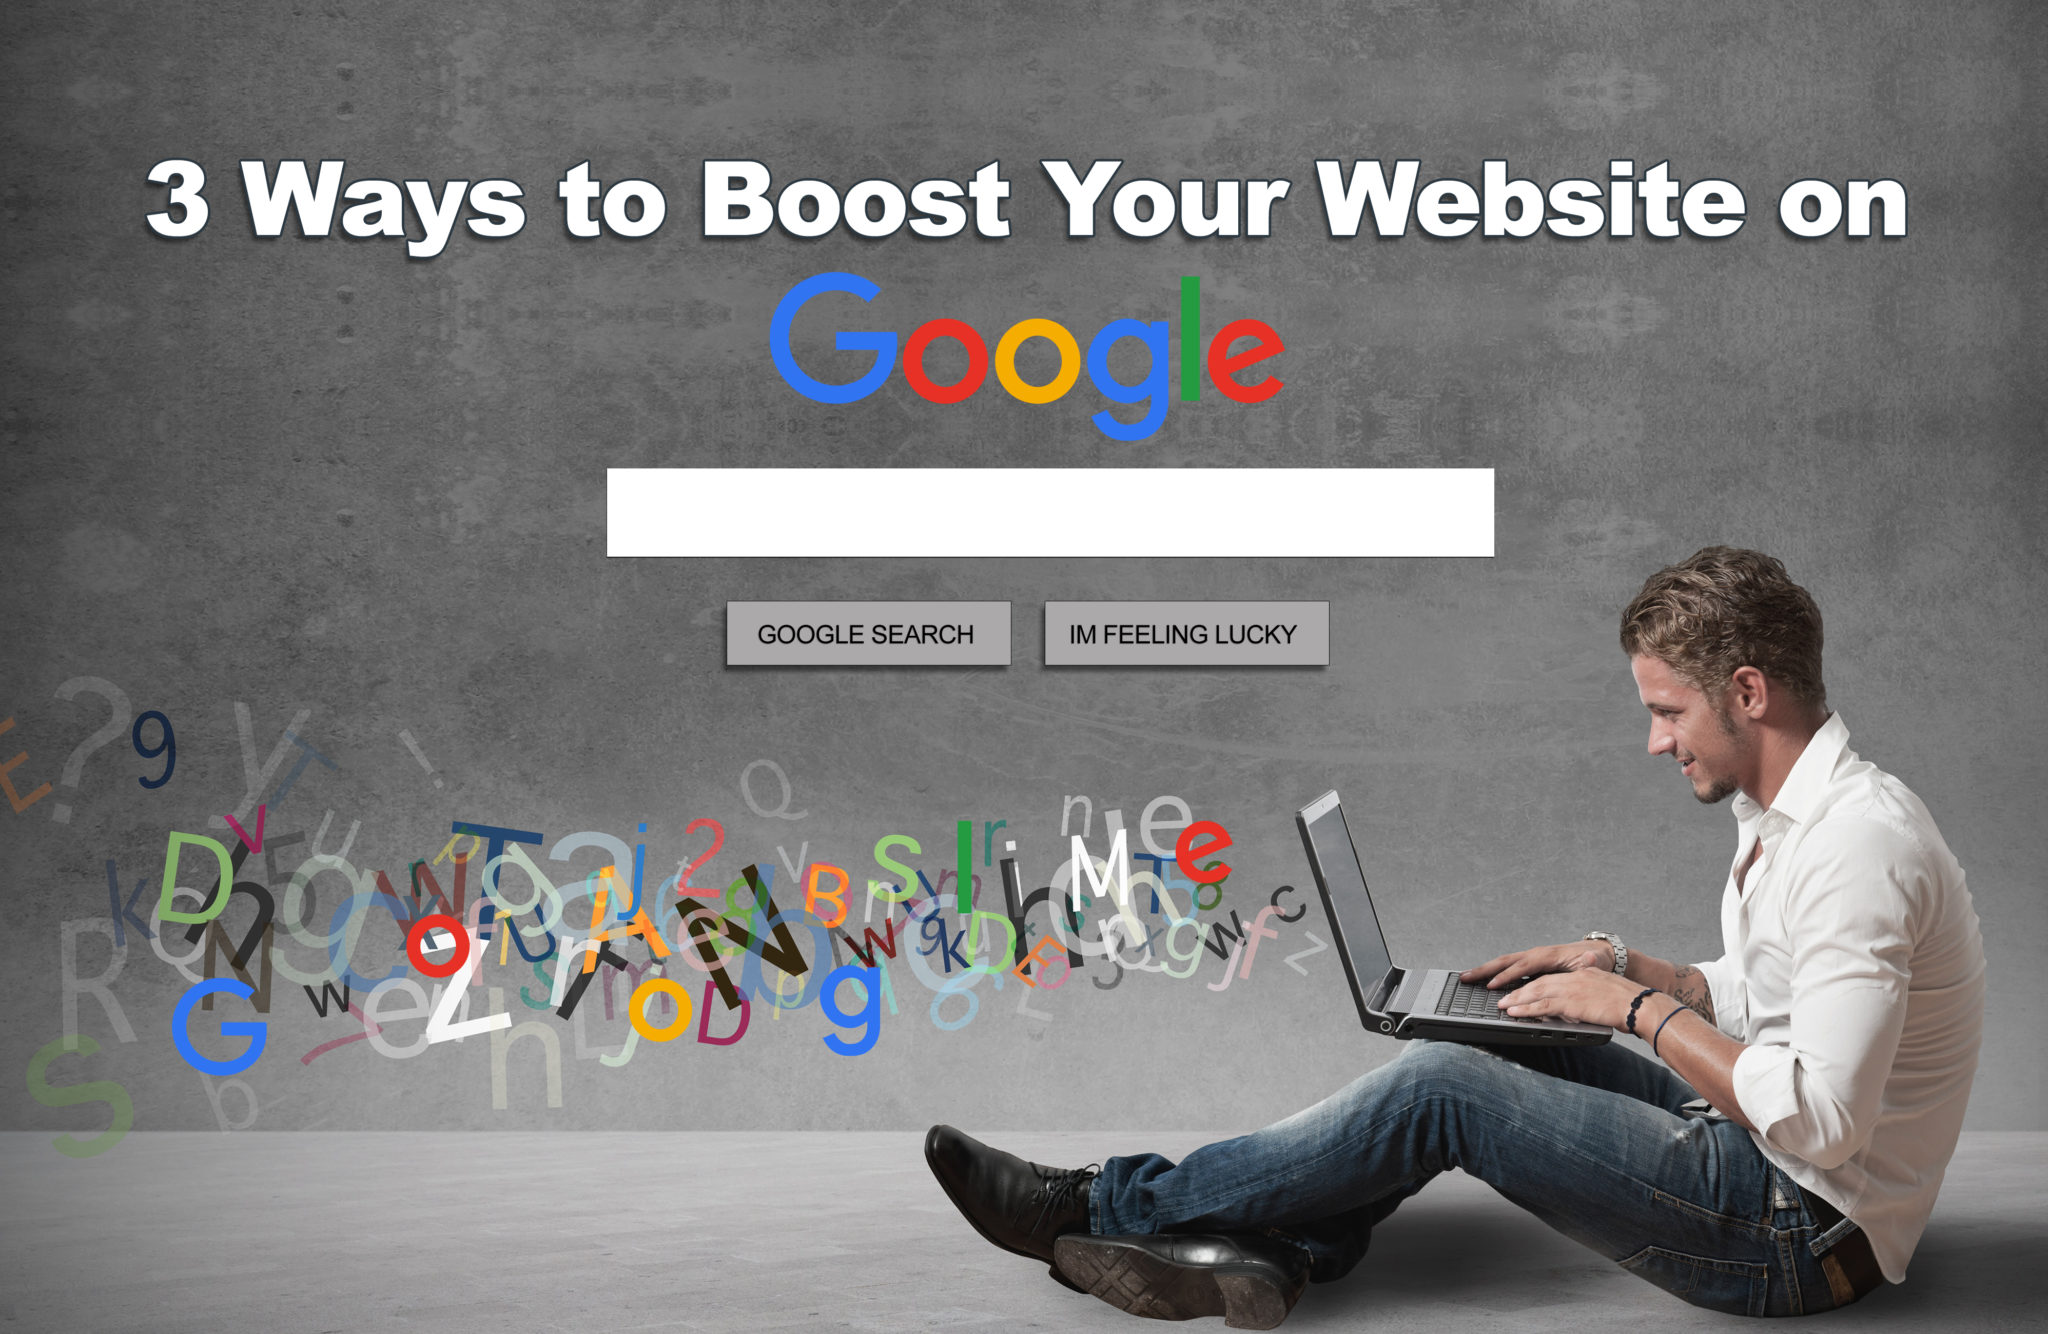 3 Ways to Boost Your Website on Google